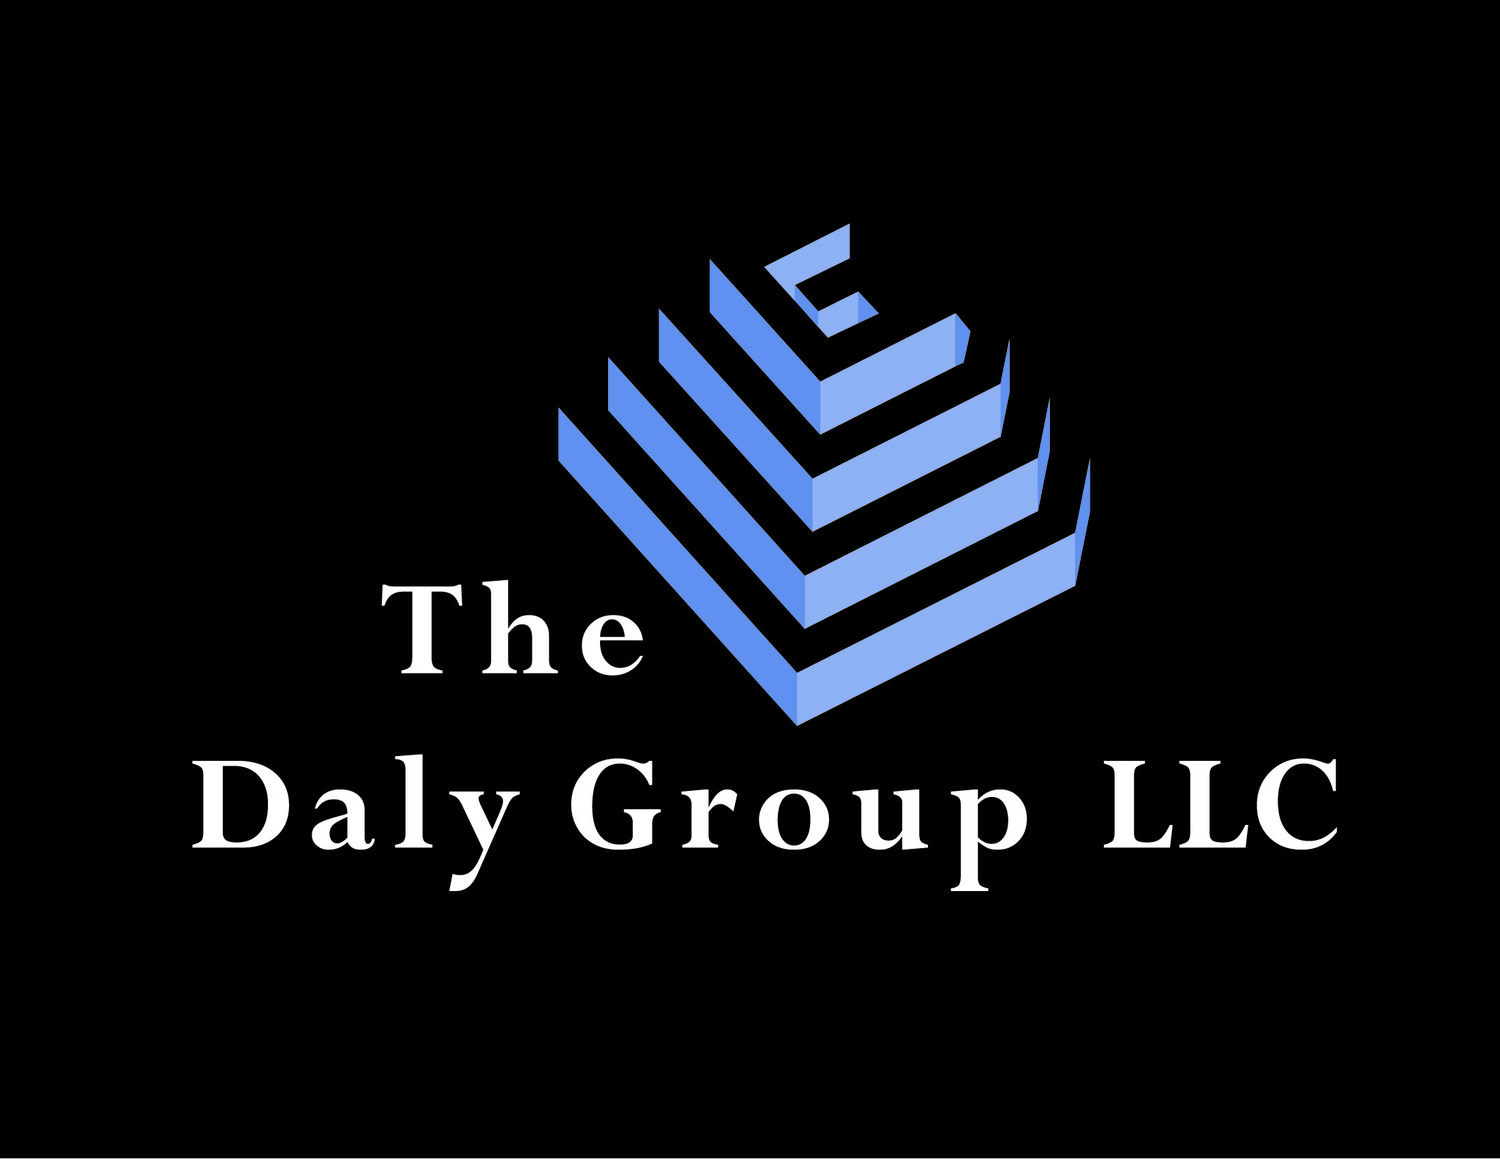 The Daly Group LLC